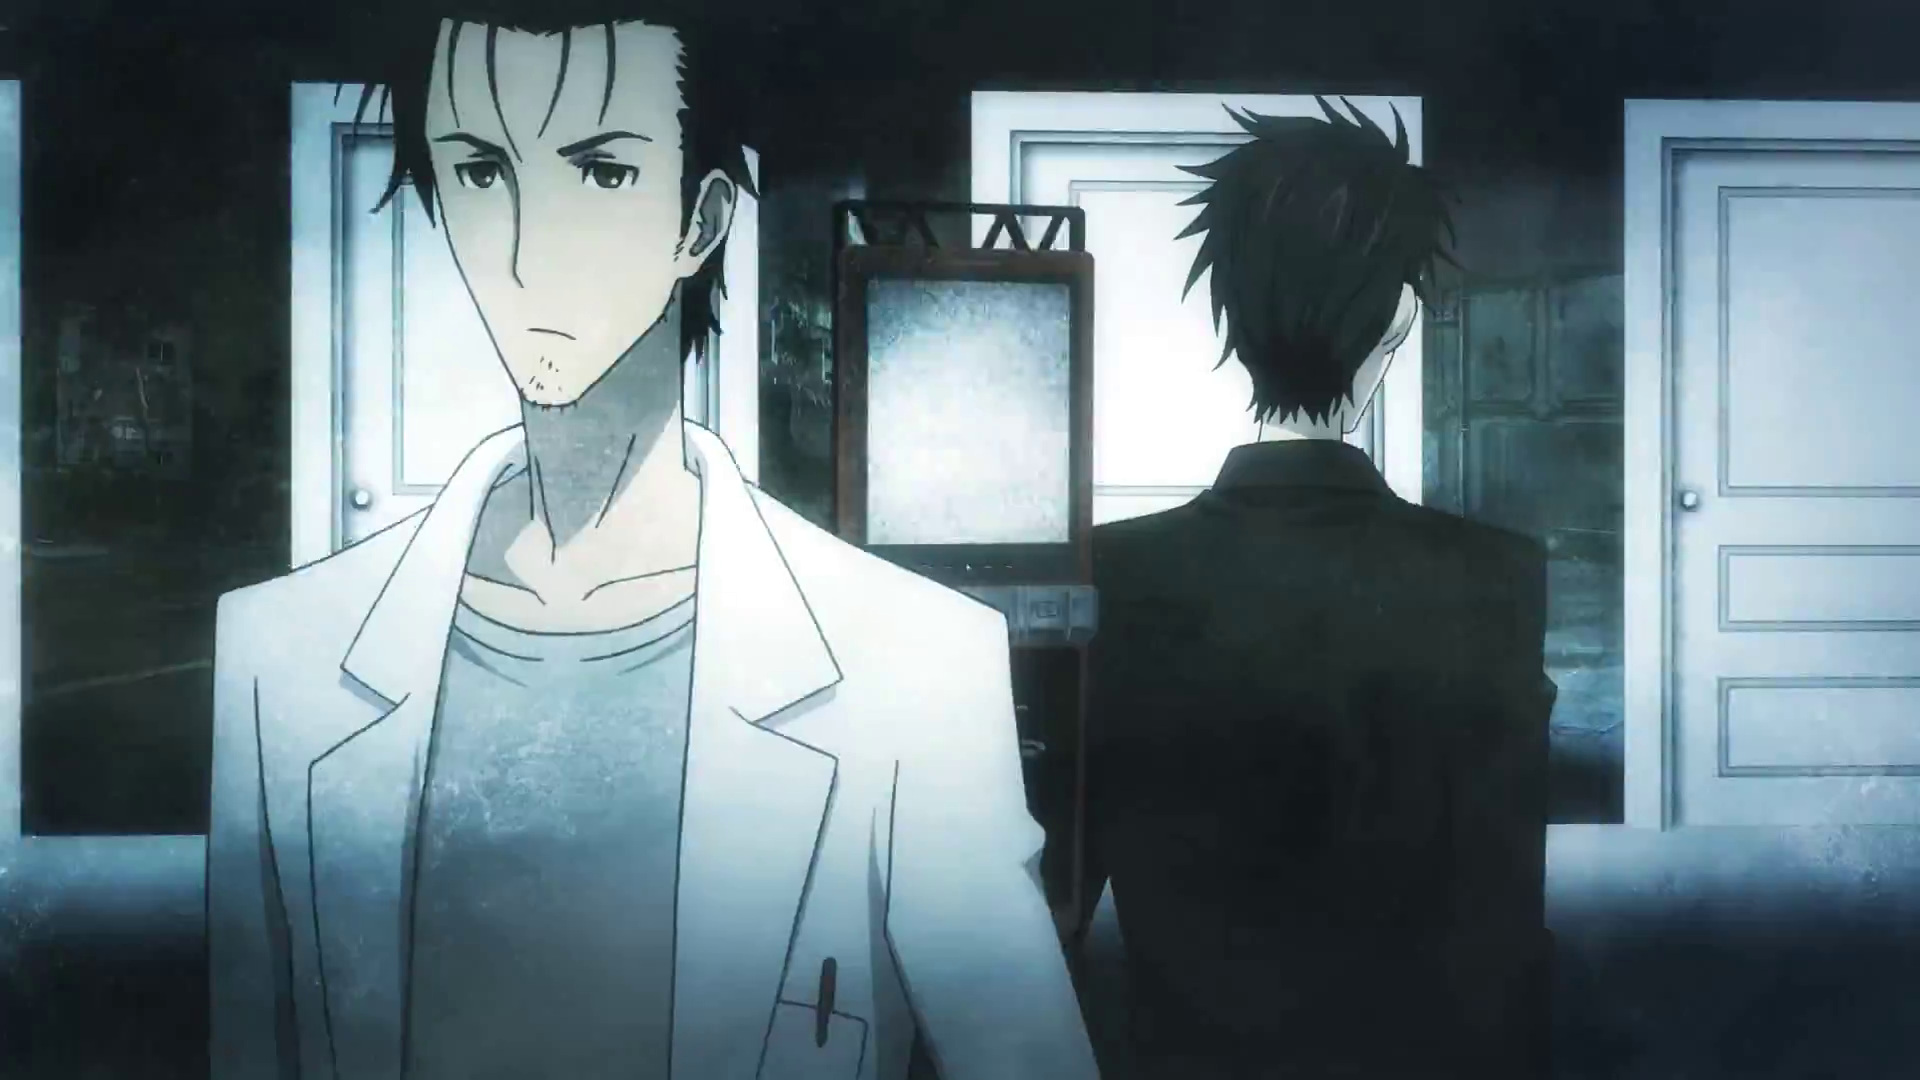 5pb games release new steins gate 0 trailer amp launch date update